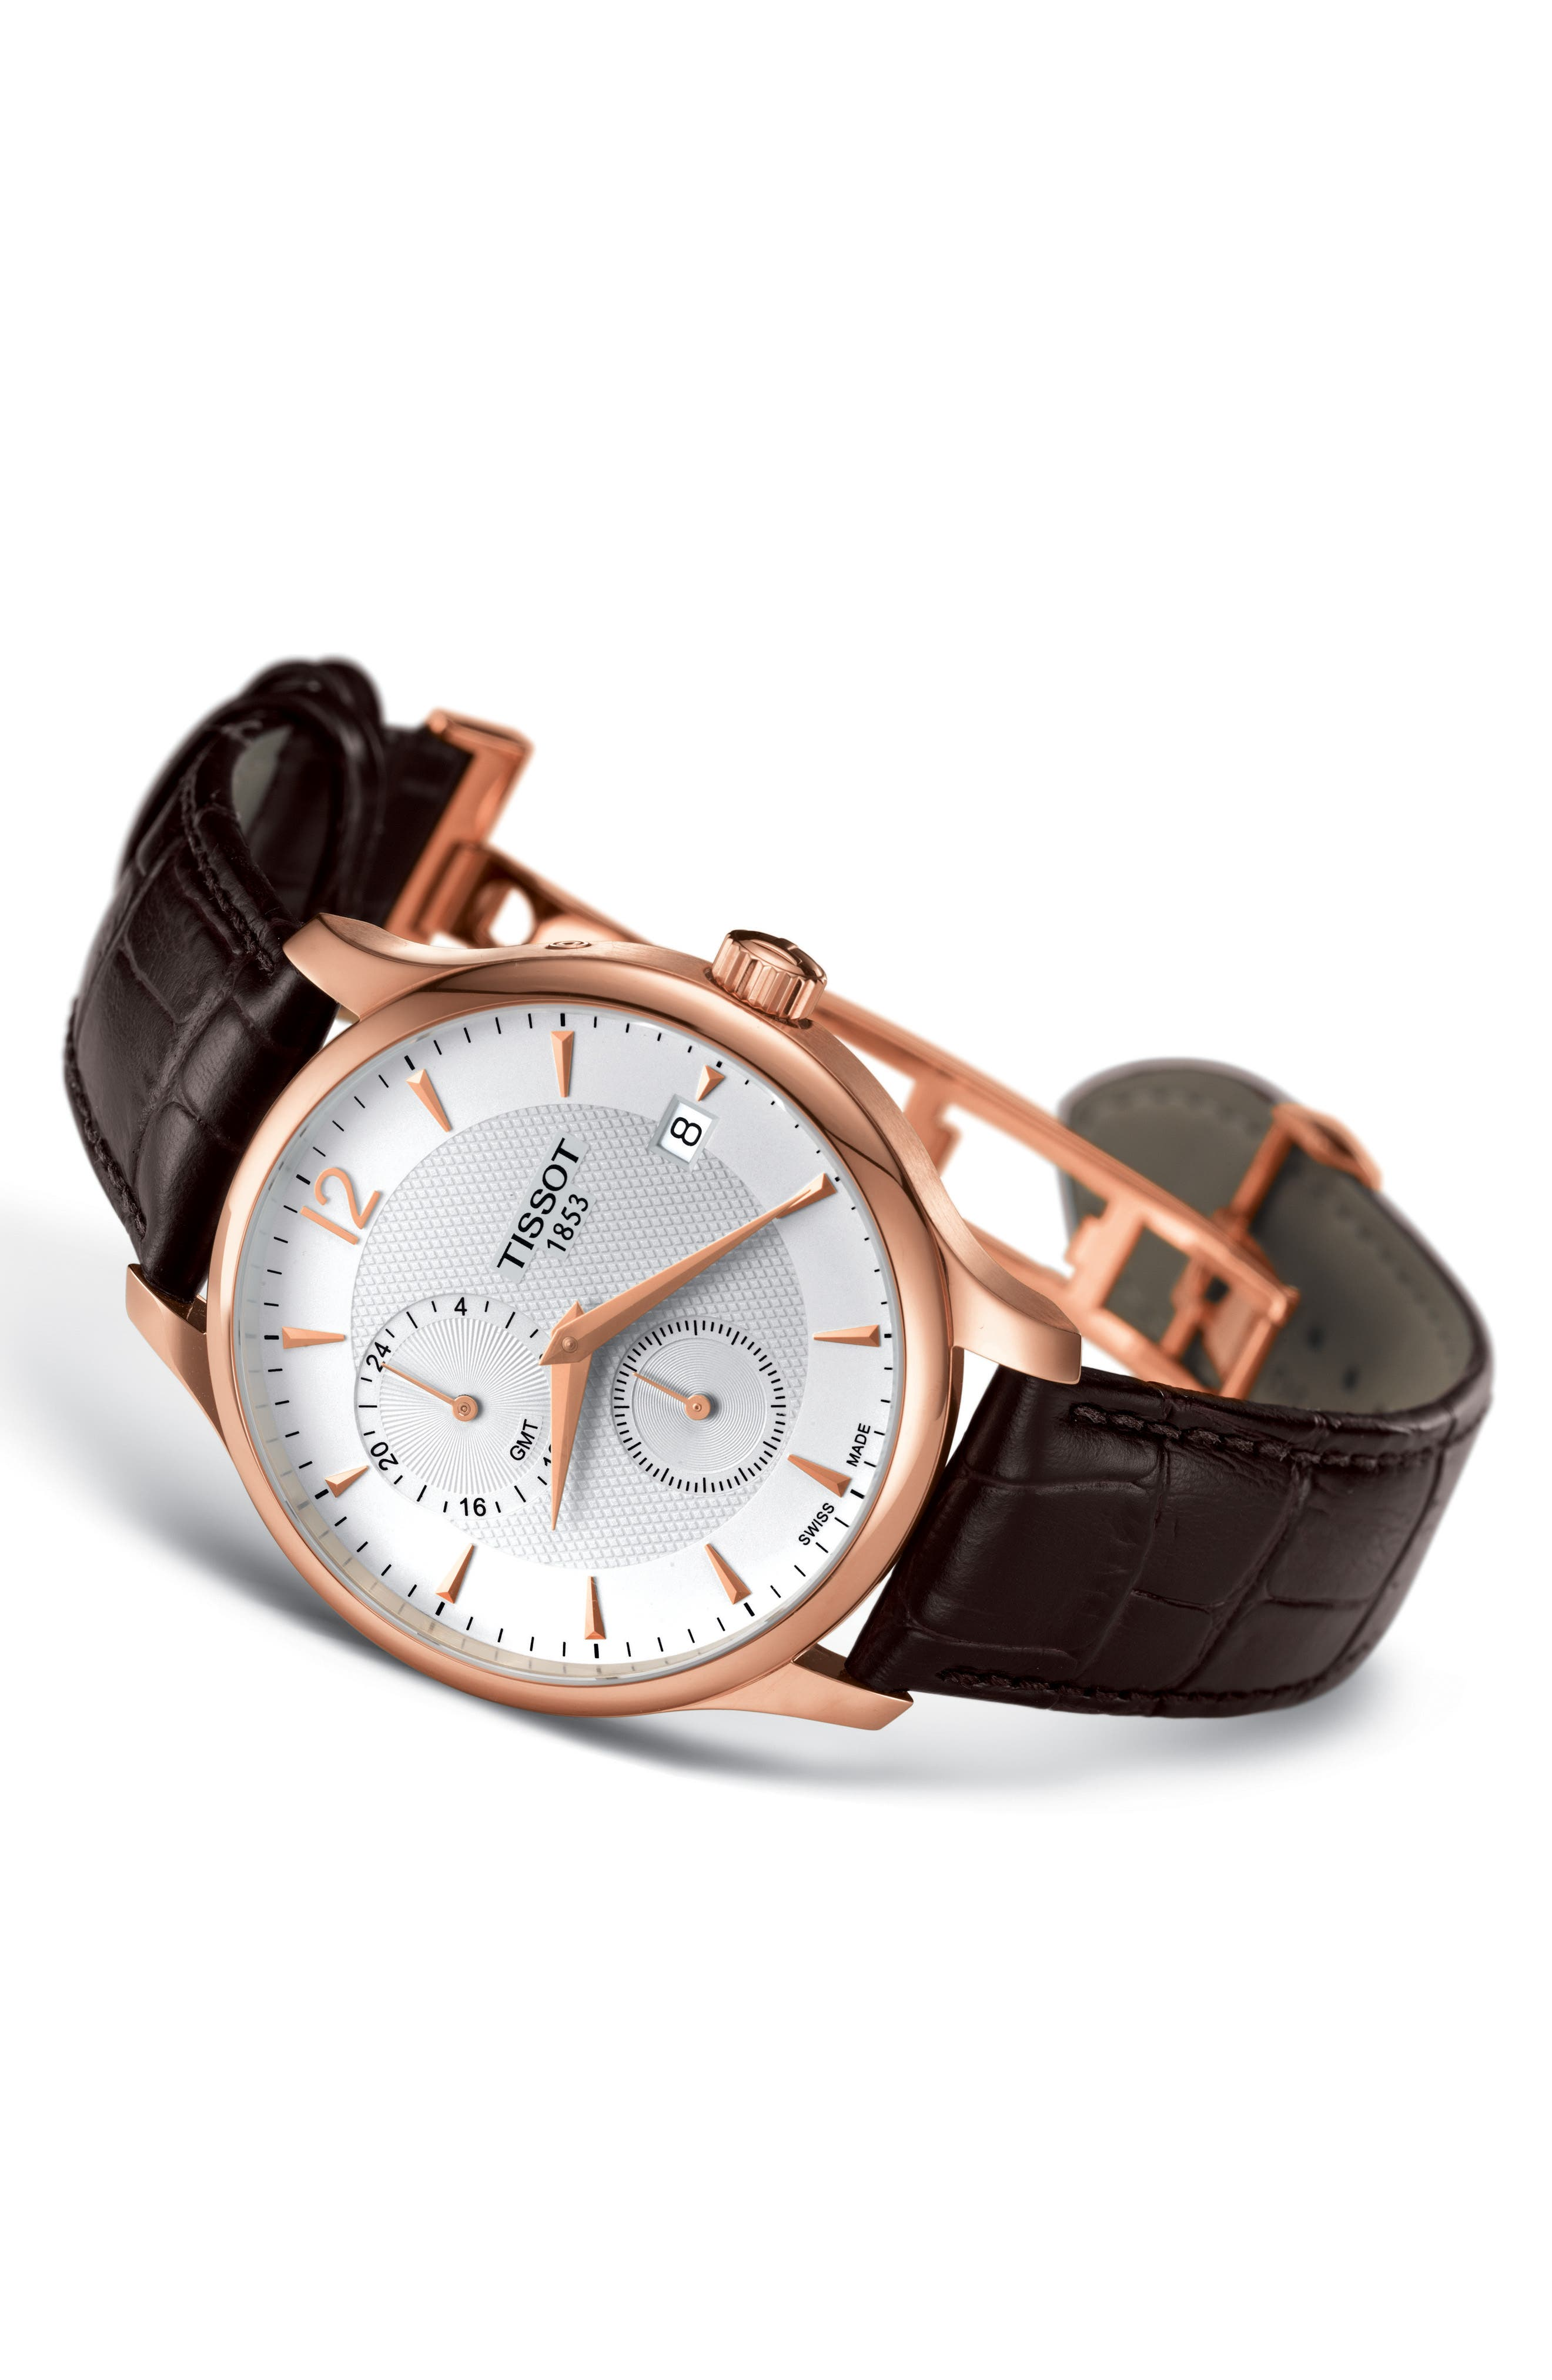 Tradition GMT Leather Strap Watch, 42mm,                             Alternate thumbnail 2, color,                             BROWN/ ROSE GOLD